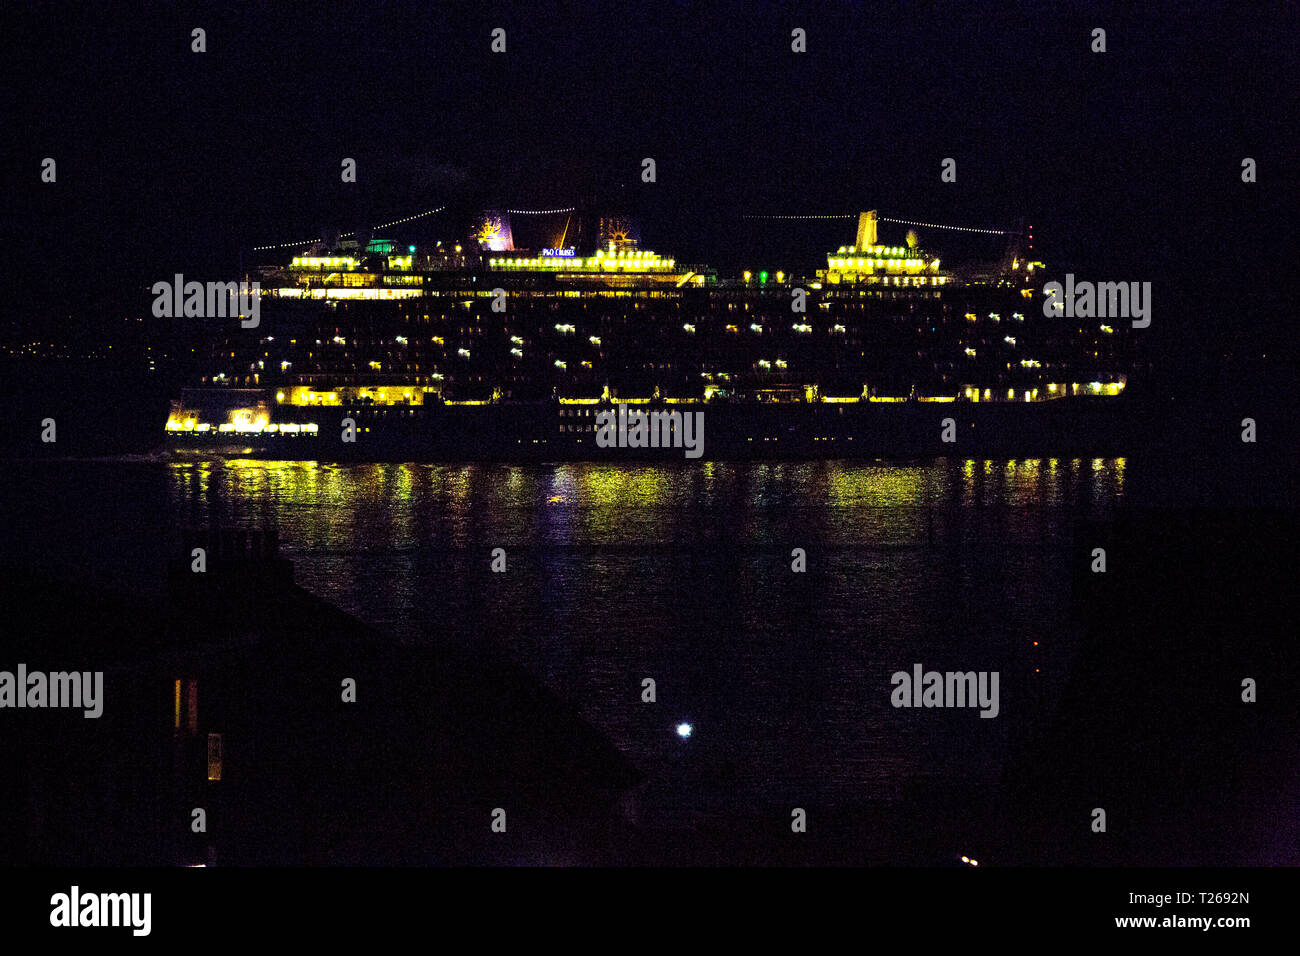 Inquinamento, MSC Bellissima.,Sophia Loren,cruise liner,a,notte,Southampton,Cowes,Isle of Wight,l'Inghilterra,UK, Immagini Stock